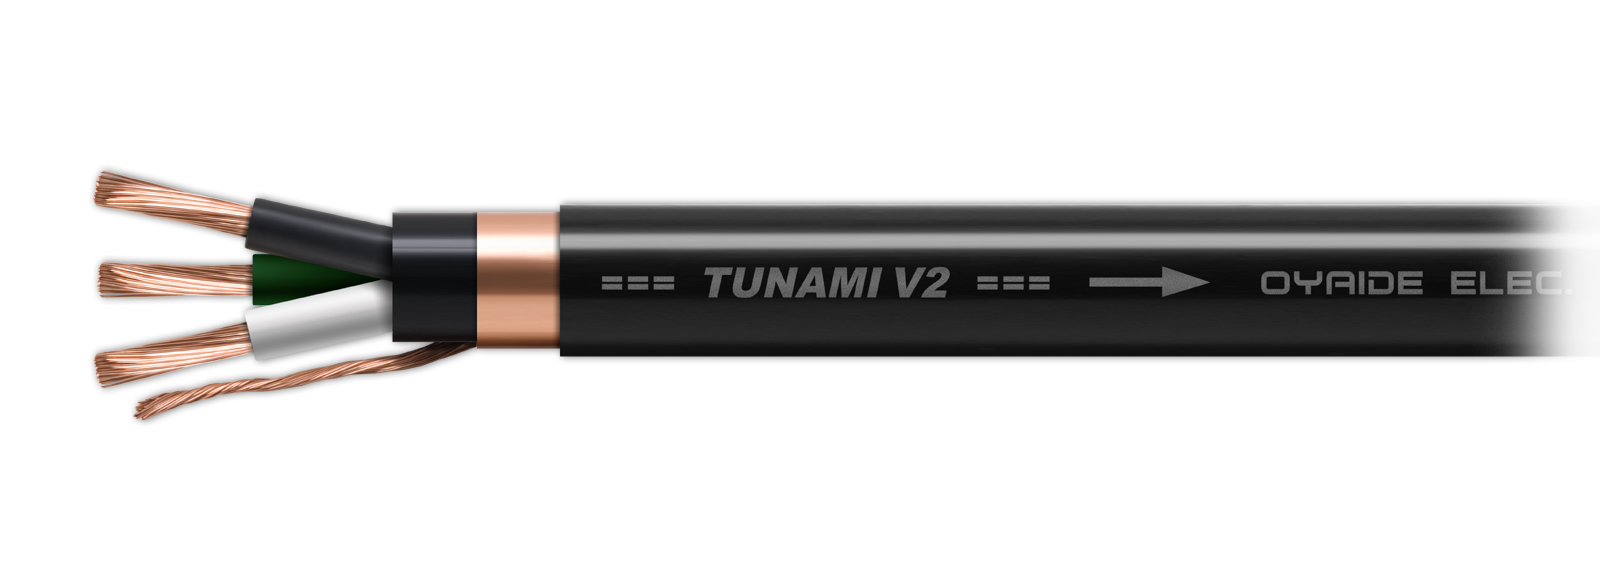 TUNAMI_CABLE_001WH_1600w.jpg